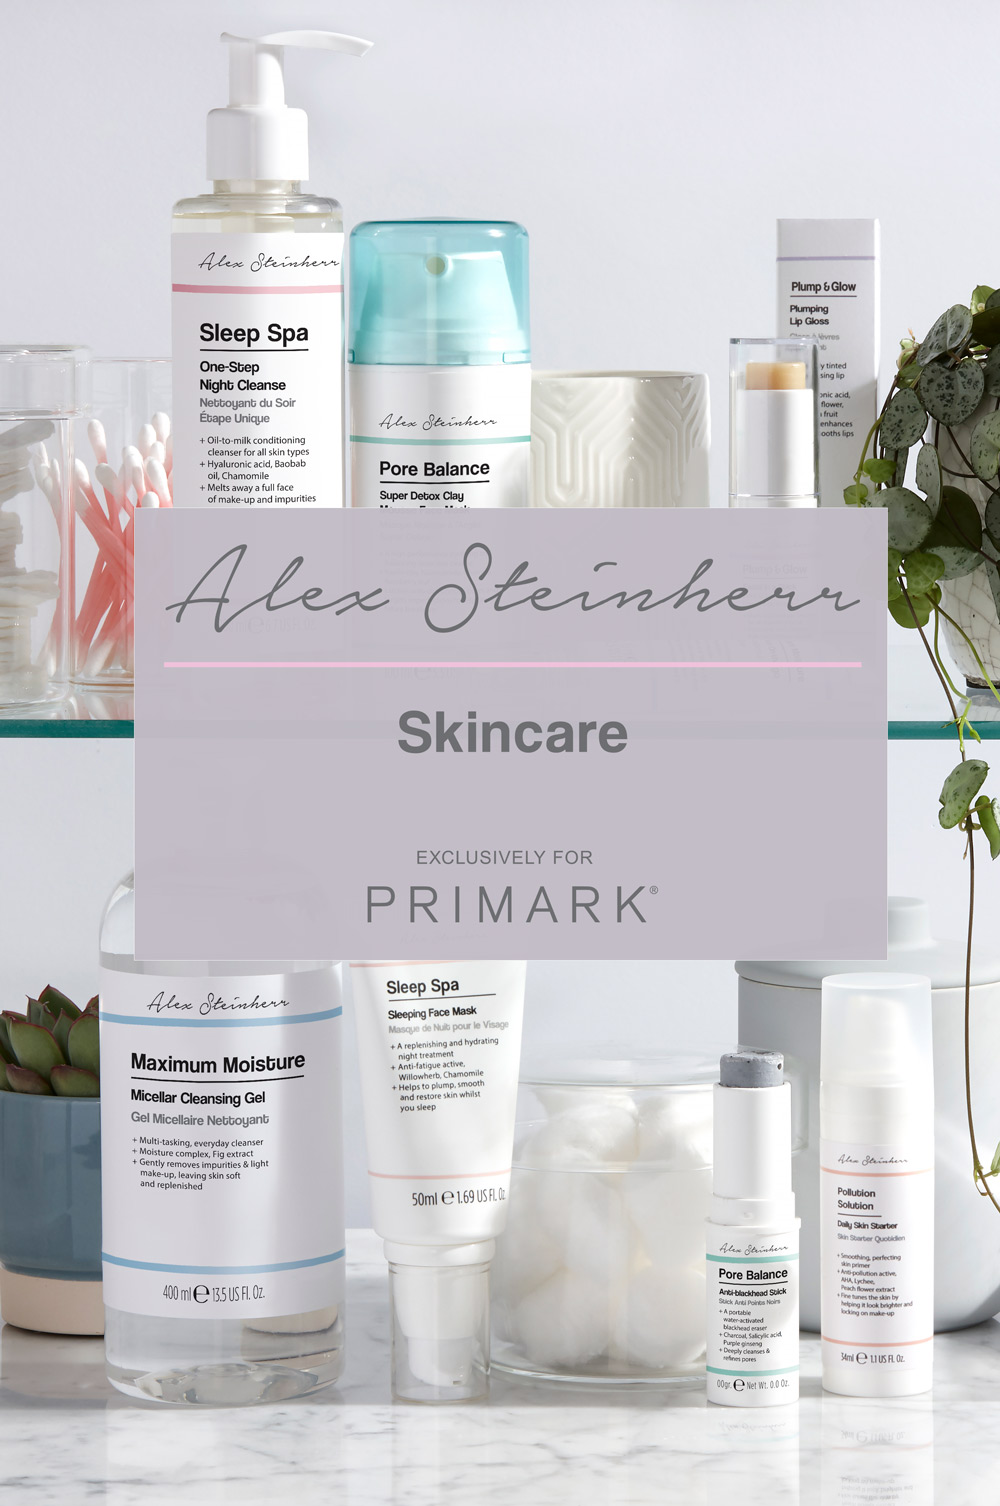 Primark-Alessandra-Steinherr-Skincare-Collection-Image-Text-Image-4.jpg